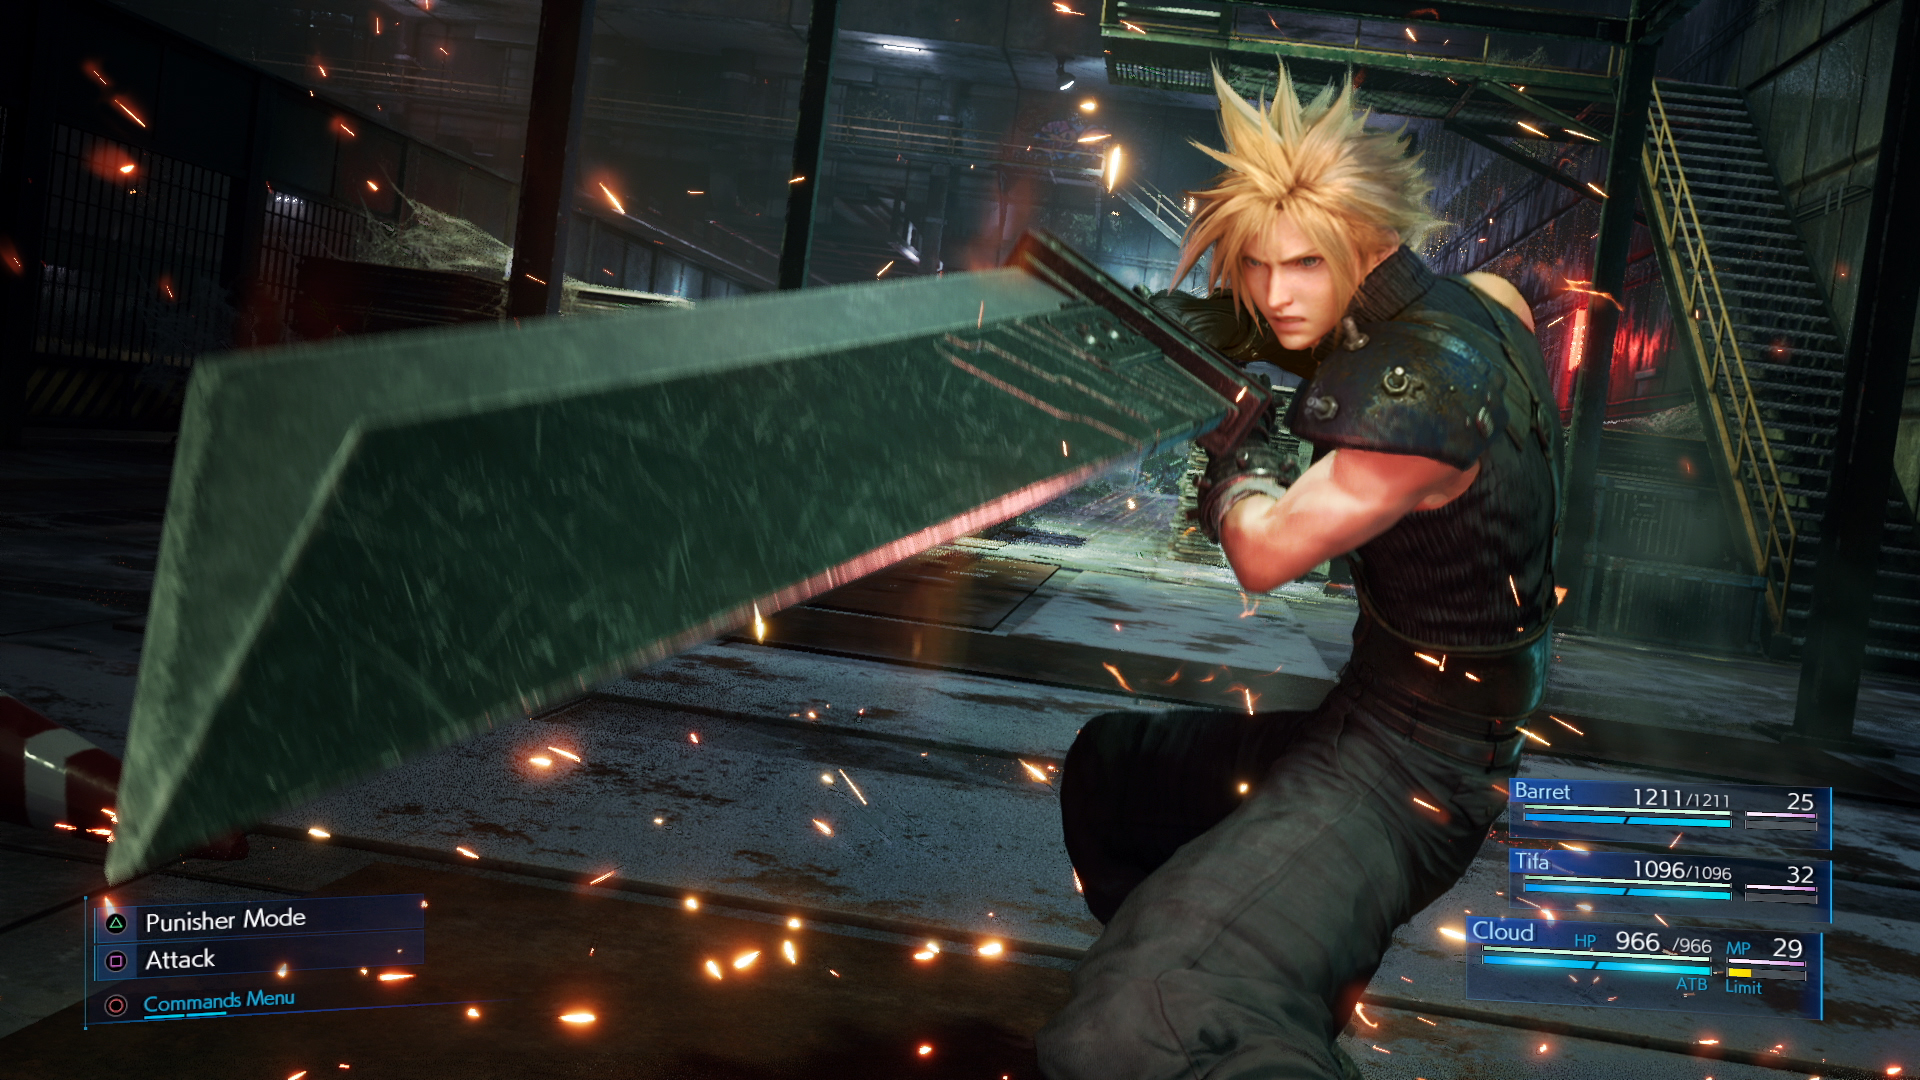 Final Fantasy 7 Remake will have a turn-based 'Classic Mode' that plays like the original